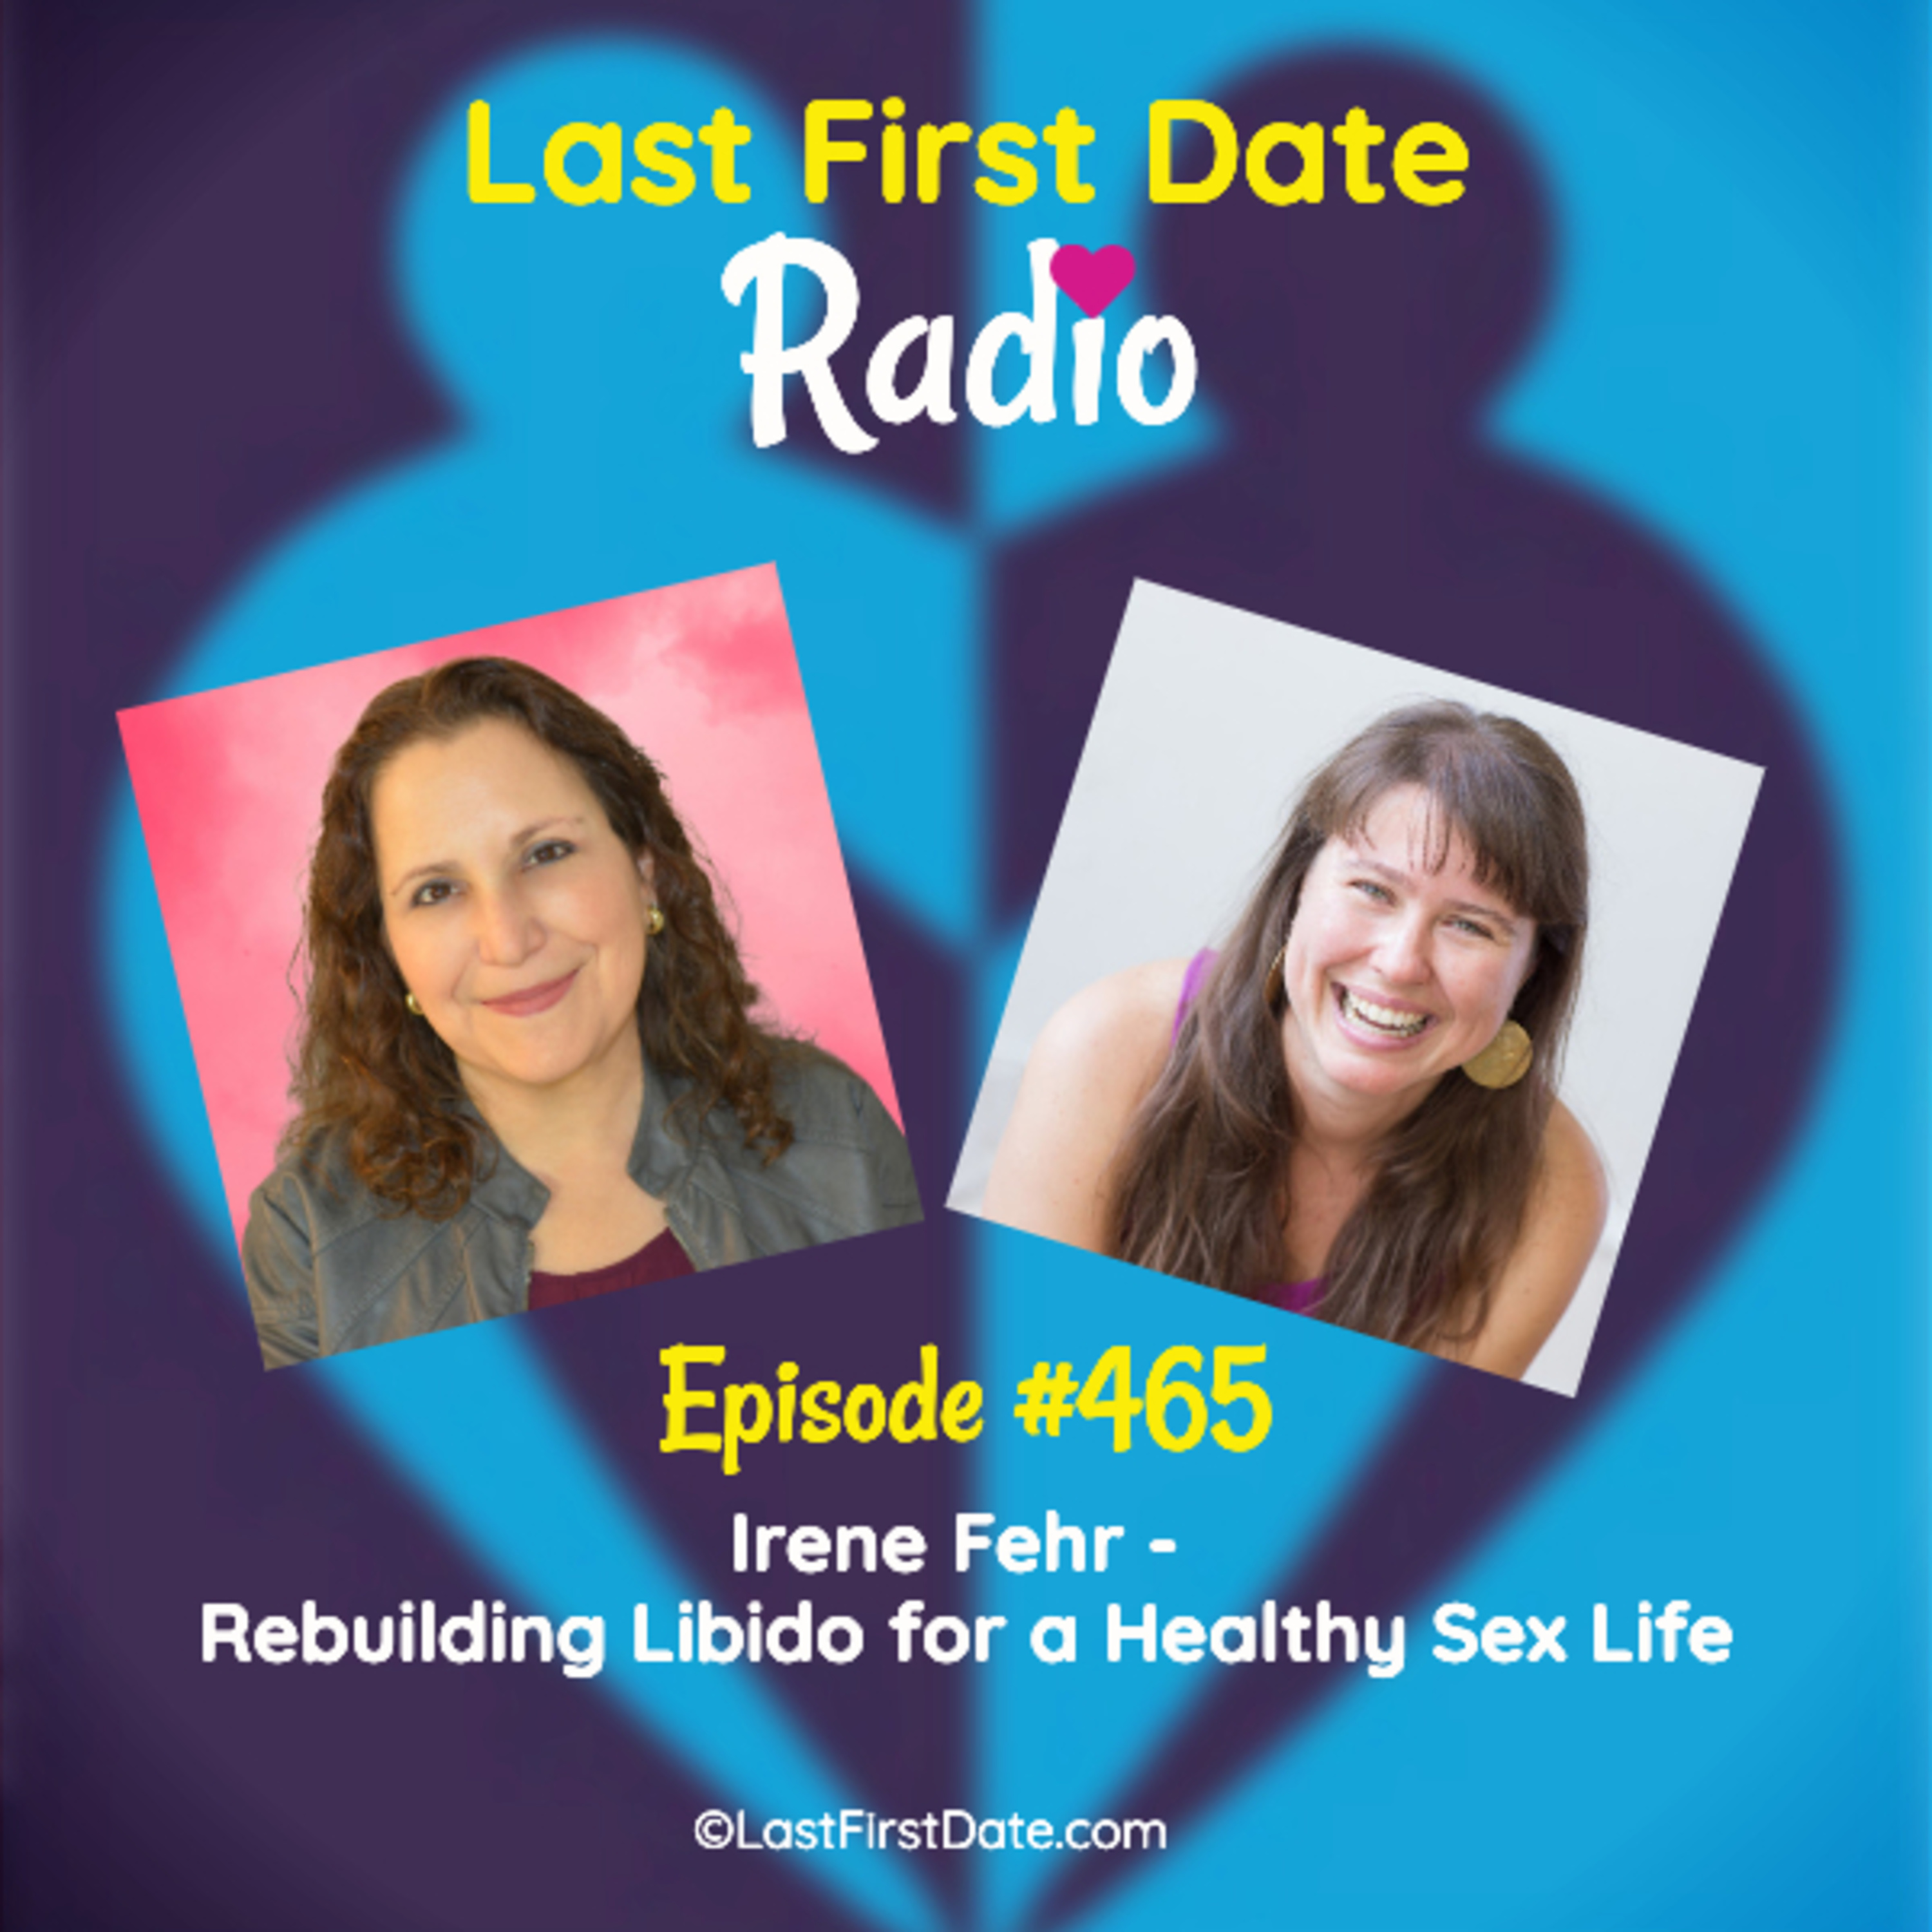 Last First Date Radio - EP 465: Irene Fehr - Rebuilding Libido for a Healthy Sex Life